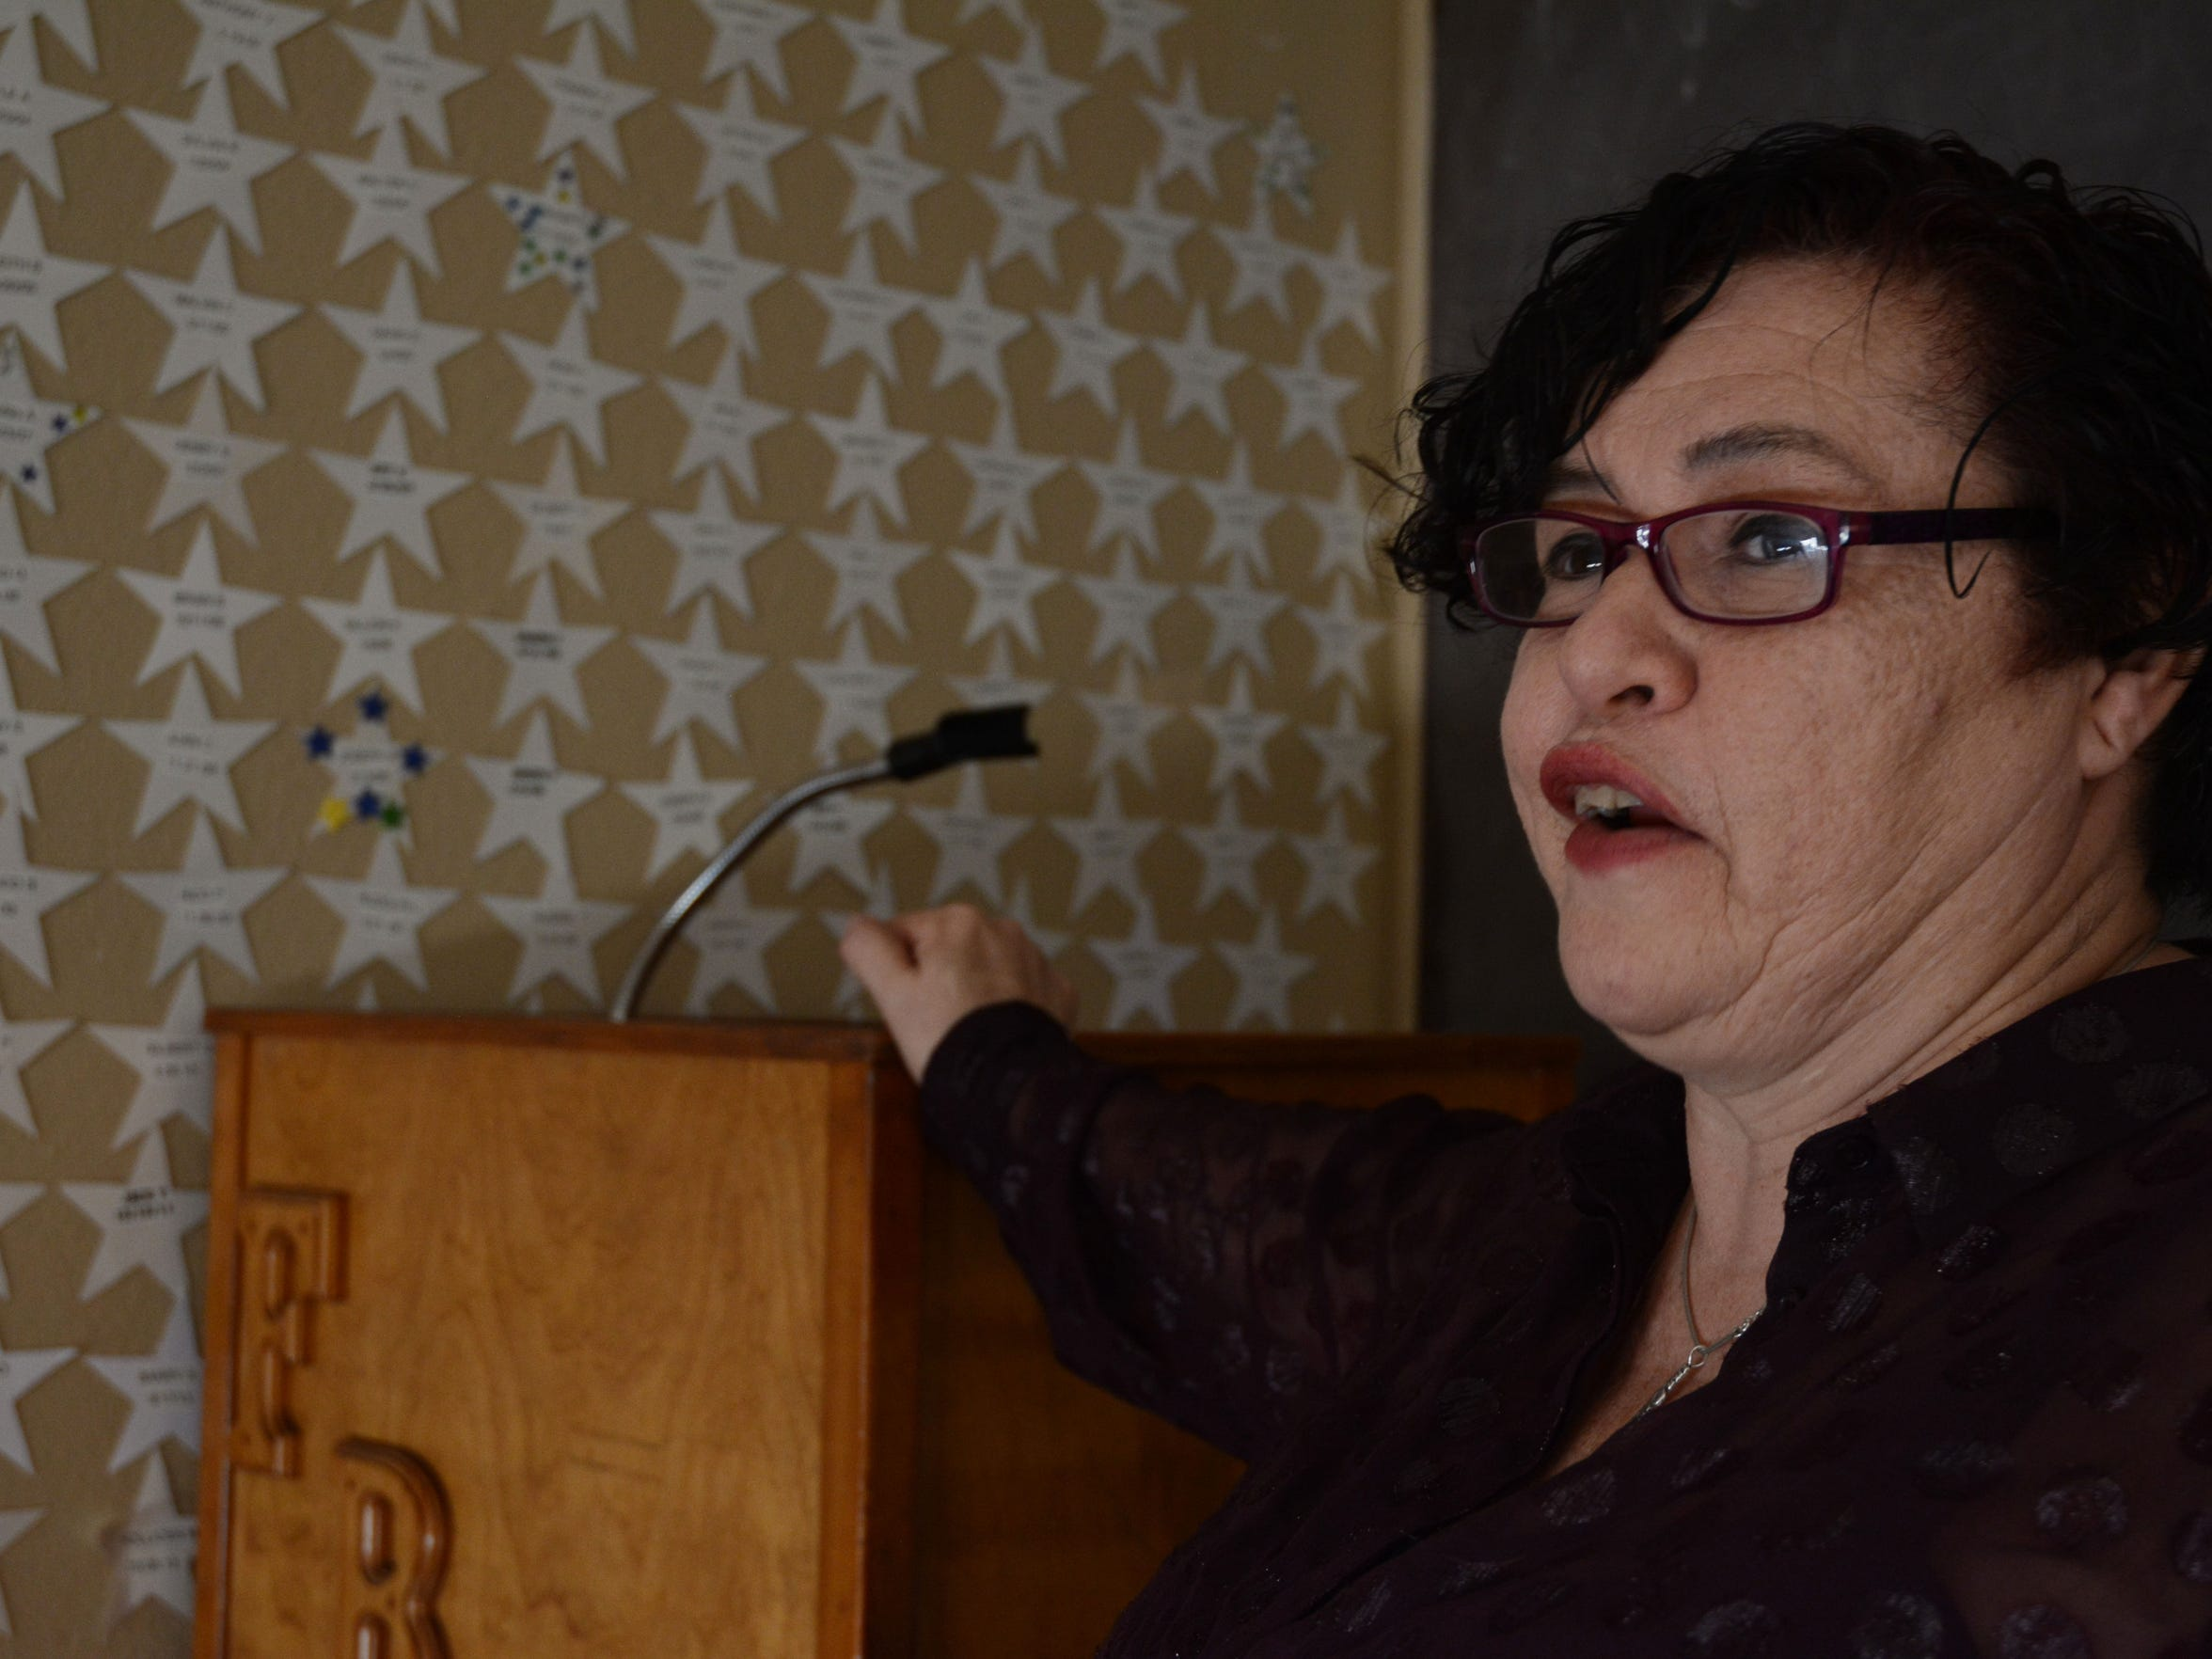 Rochelle Solombrino, 50, who had four felonies reduced